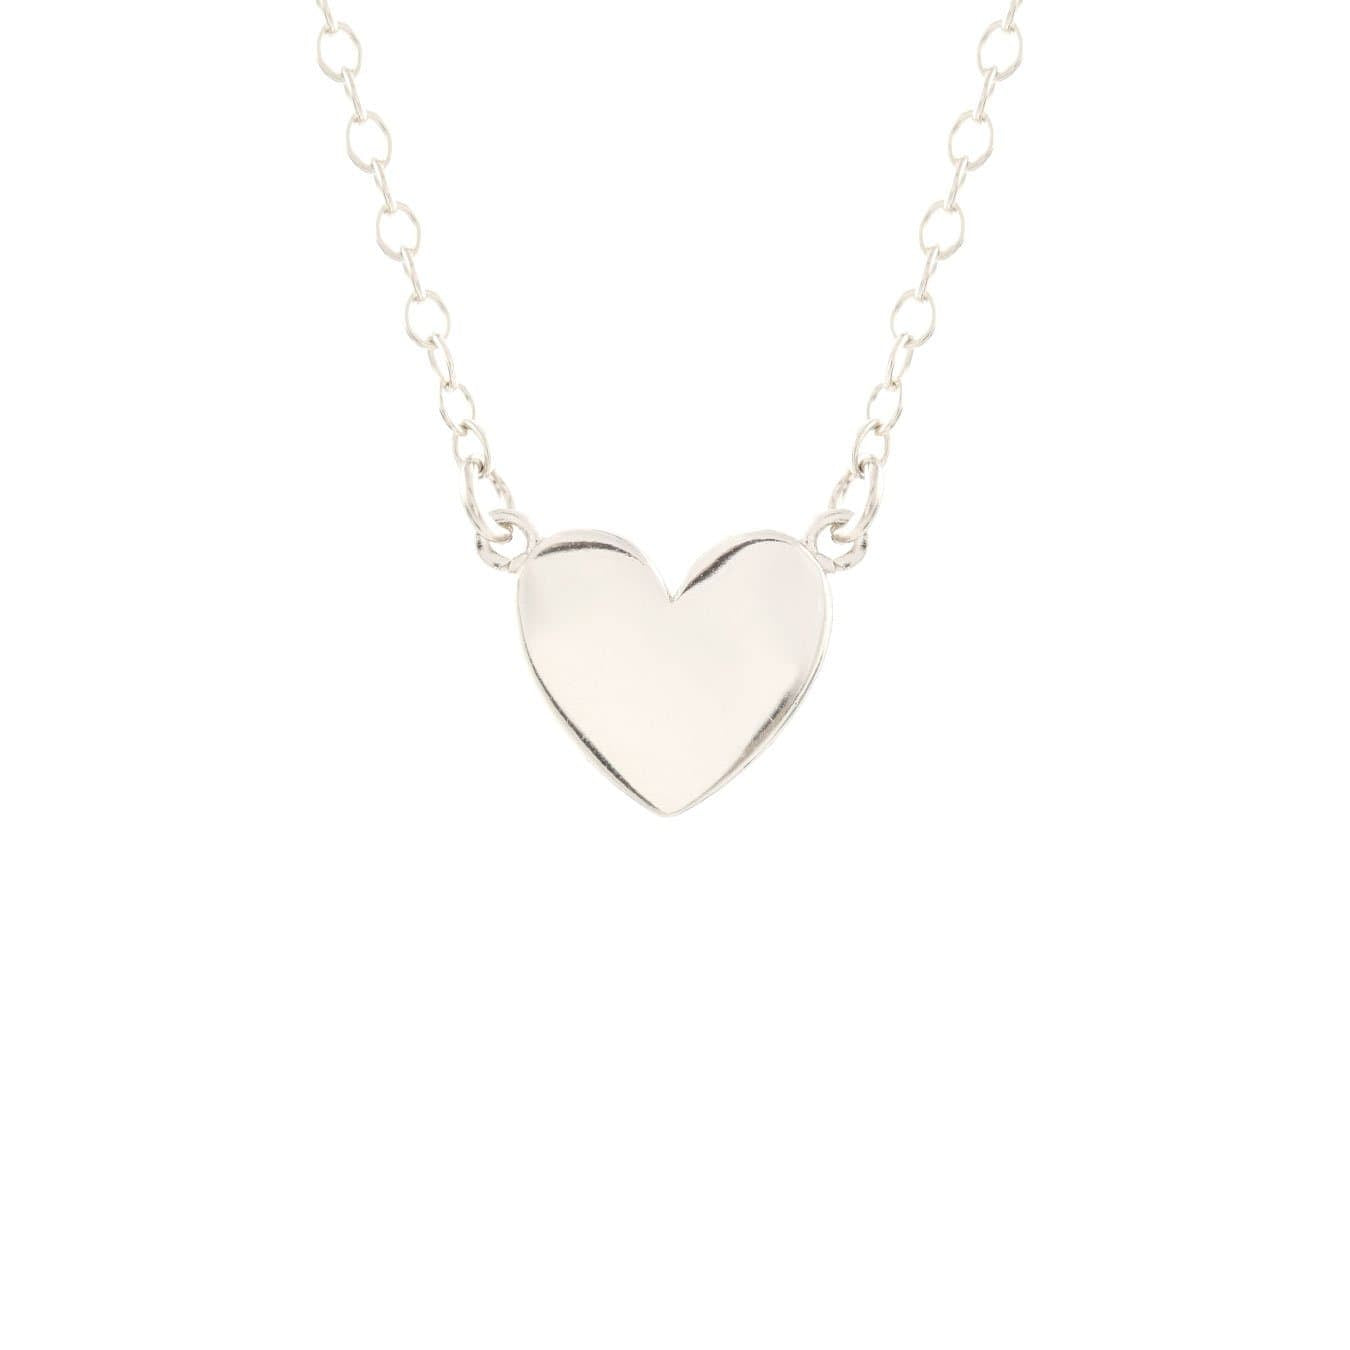 KRIS NATIONS - SOLID HEART NECKLACE IN SILVER